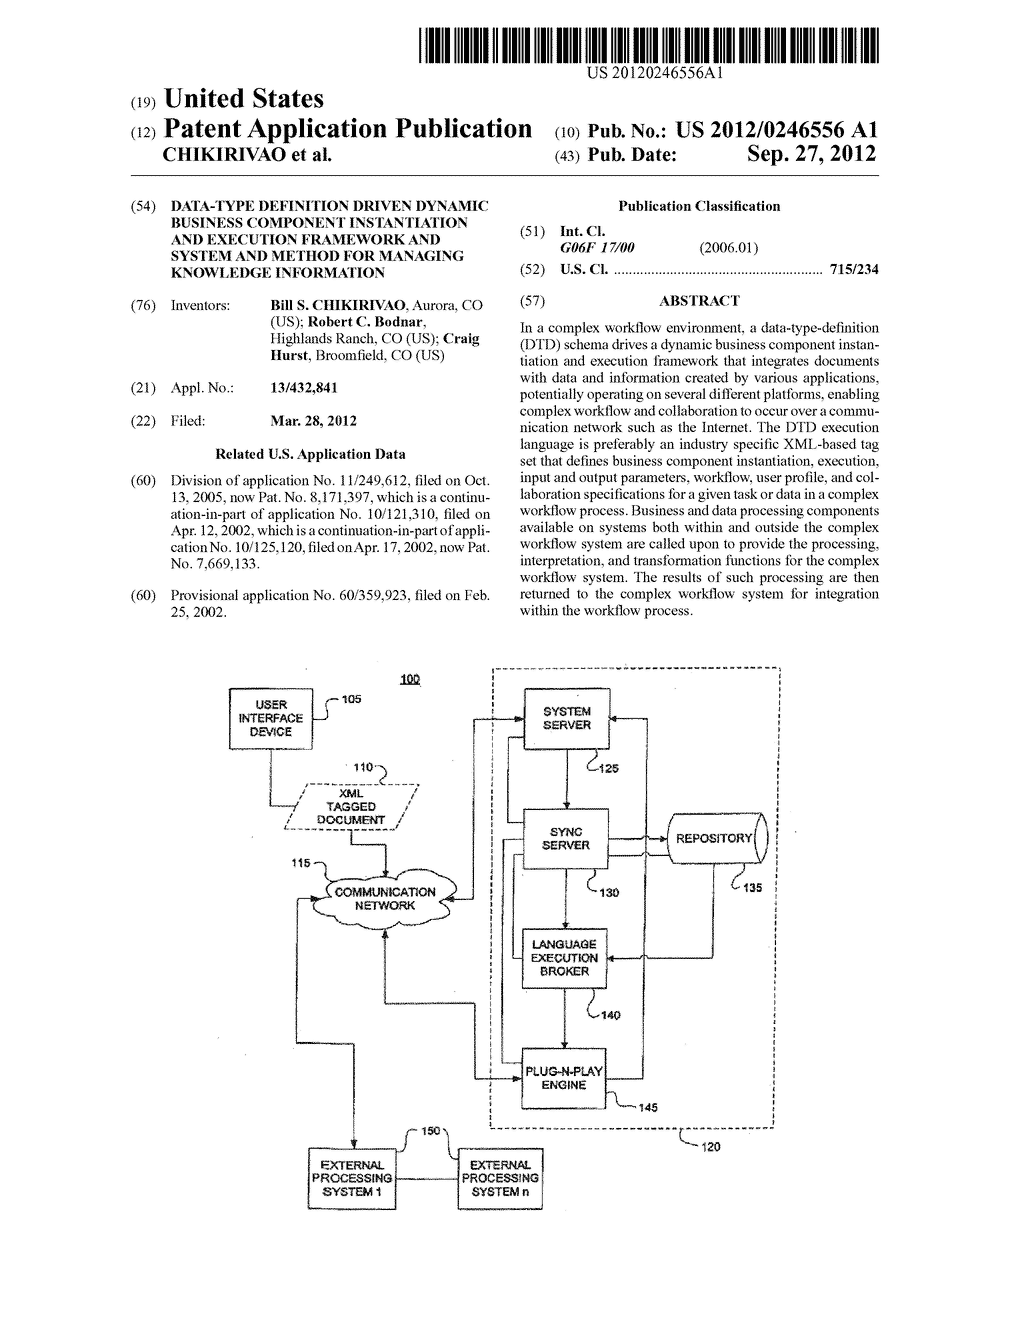 DATA-TYPE DEFINITION DRIVEN DYNAMIC BUSINESS COMPONENT INSTANTIATION AND     EXECUTION FRAMEWORK AND SYSTEM AND METHOD FOR MANAGING KNOWLEDGE     INFORMATION - diagram, schematic, and image 01